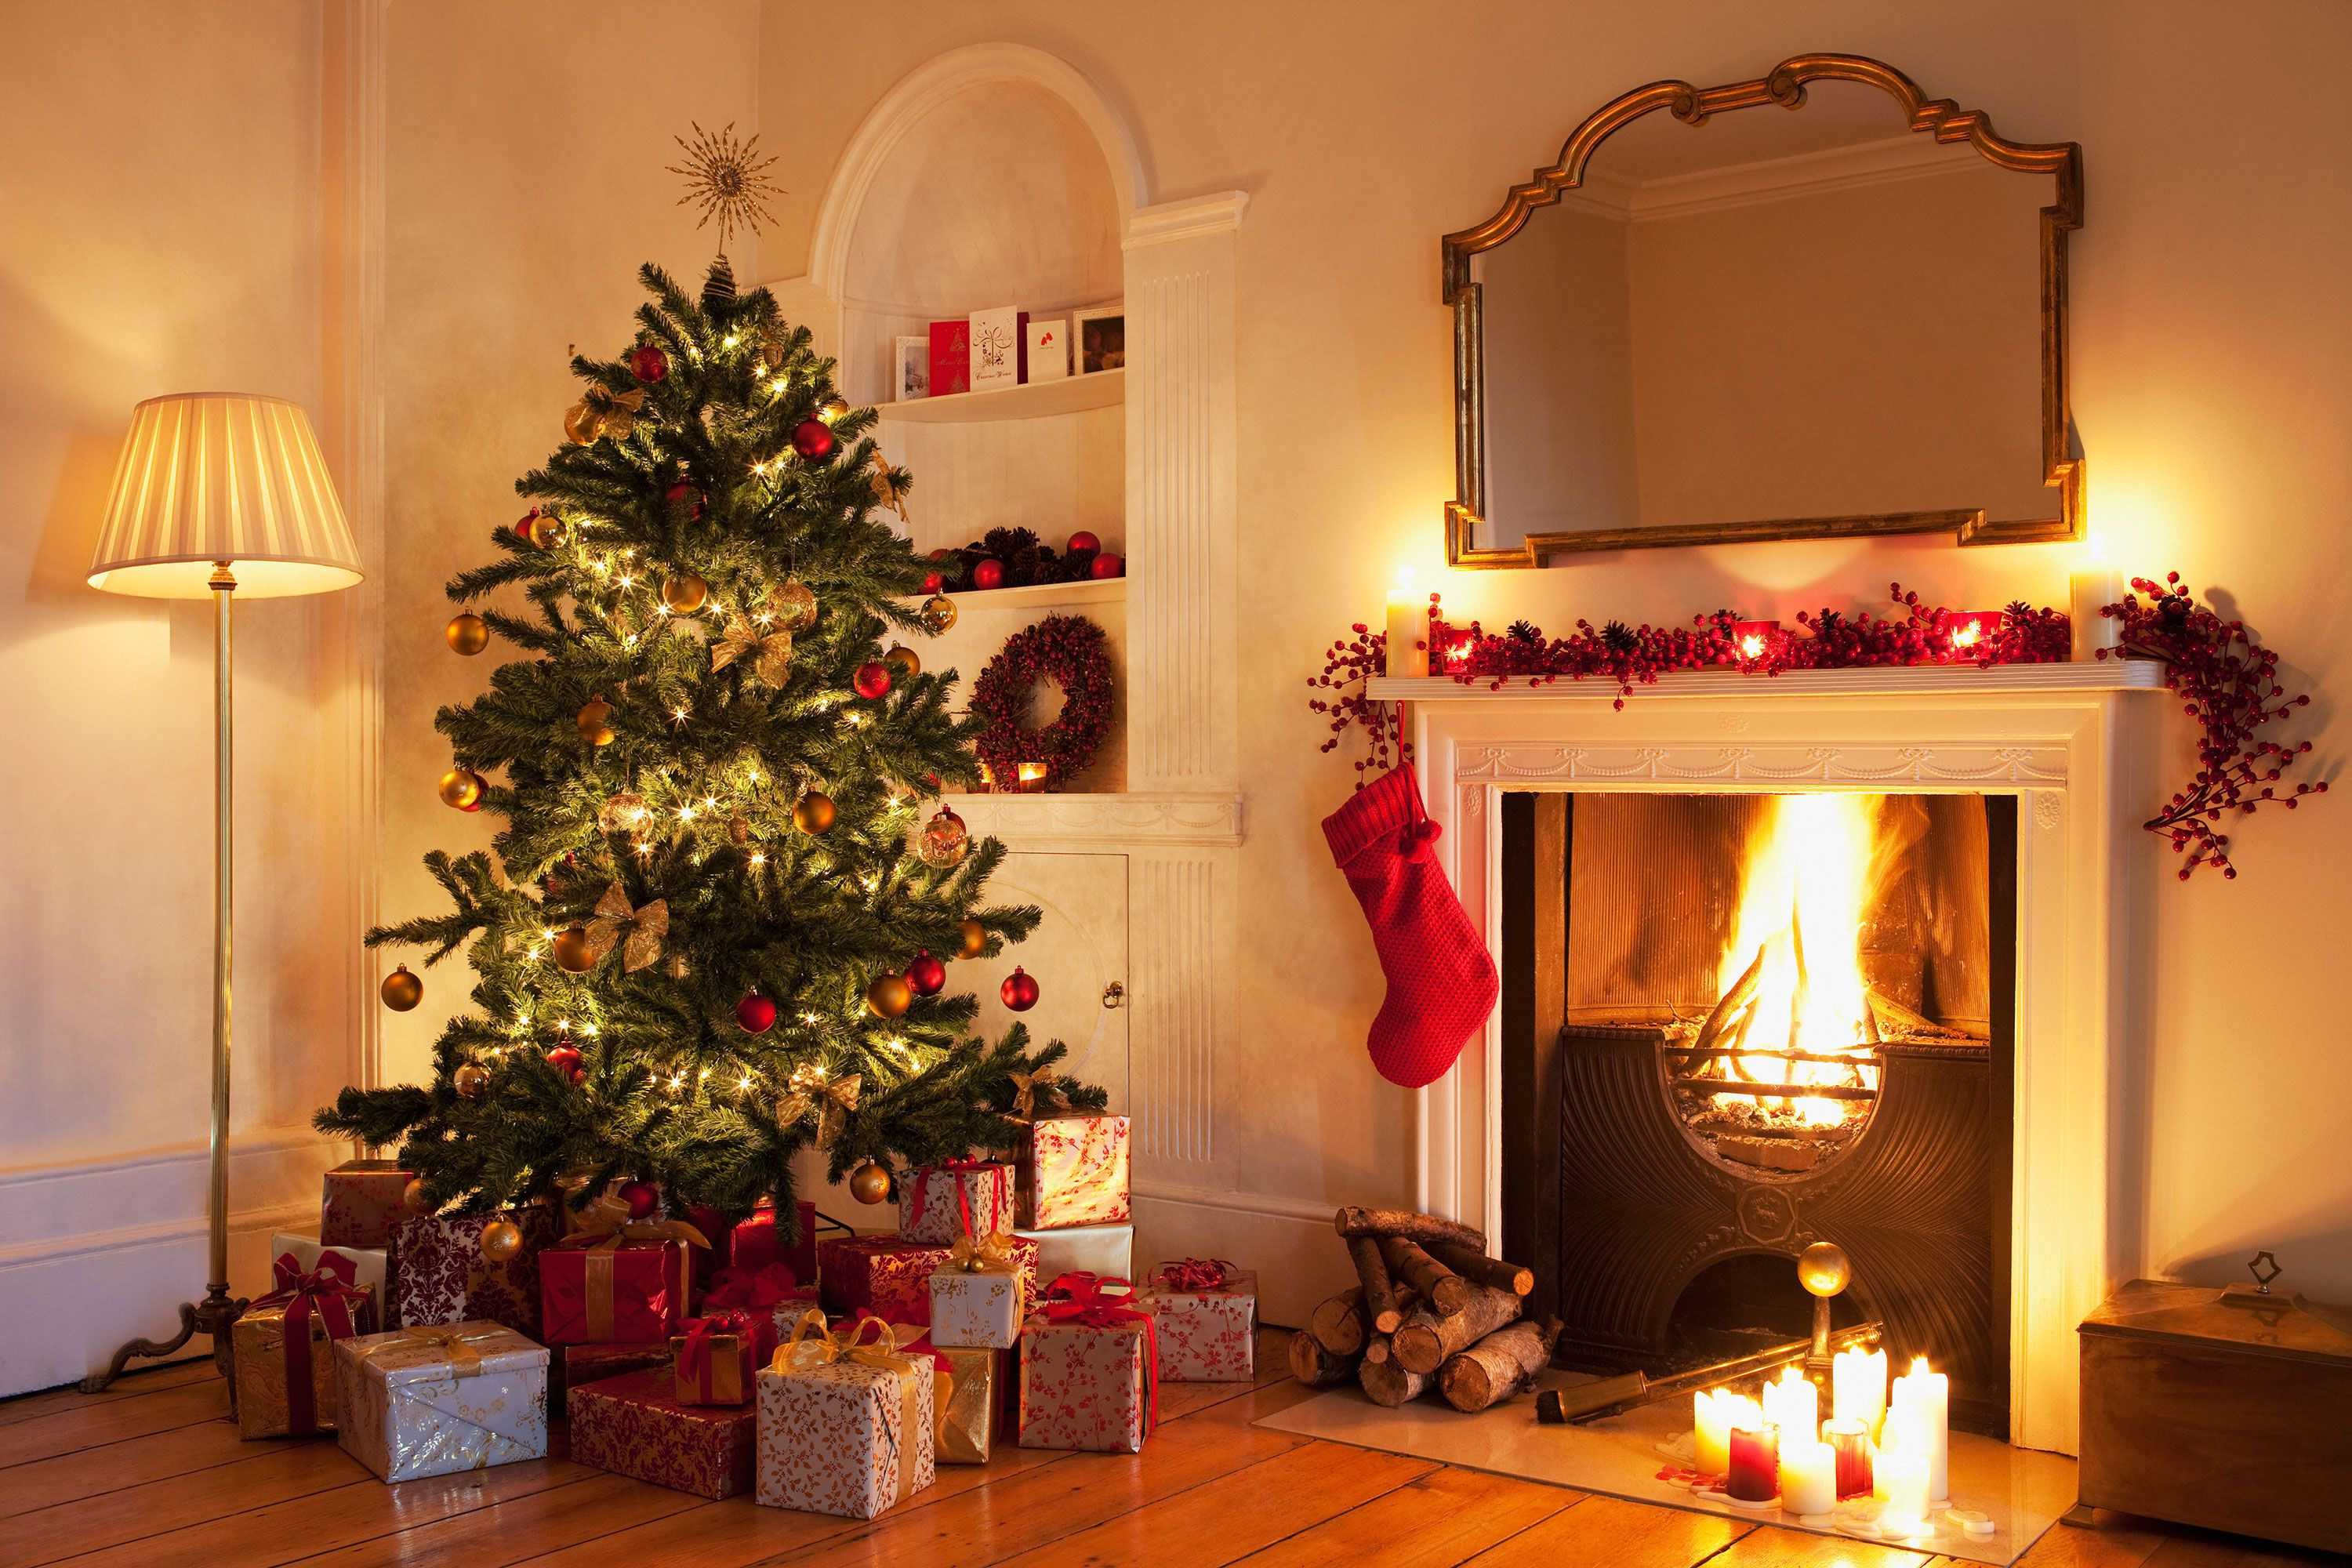 Would you pay for a Christmas tree-decorating service?